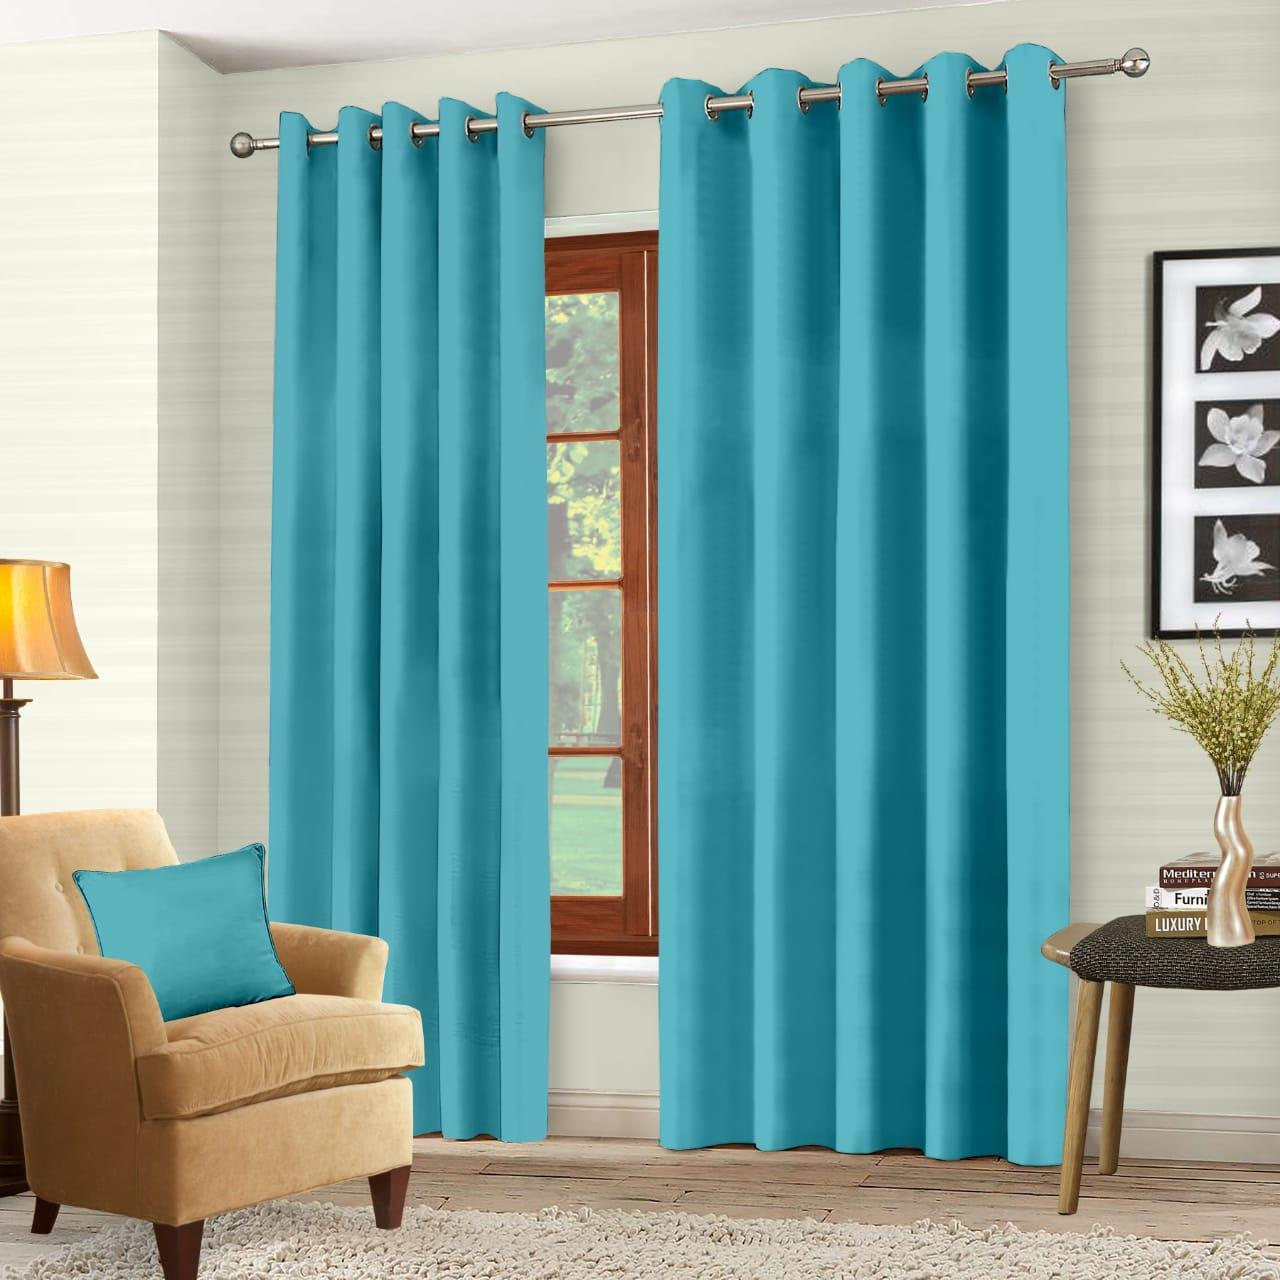 Luxury-Thermal-Blackout-Eyelet-Ring-Top-Curtains-Pair-with-tie-backs thumbnail 57